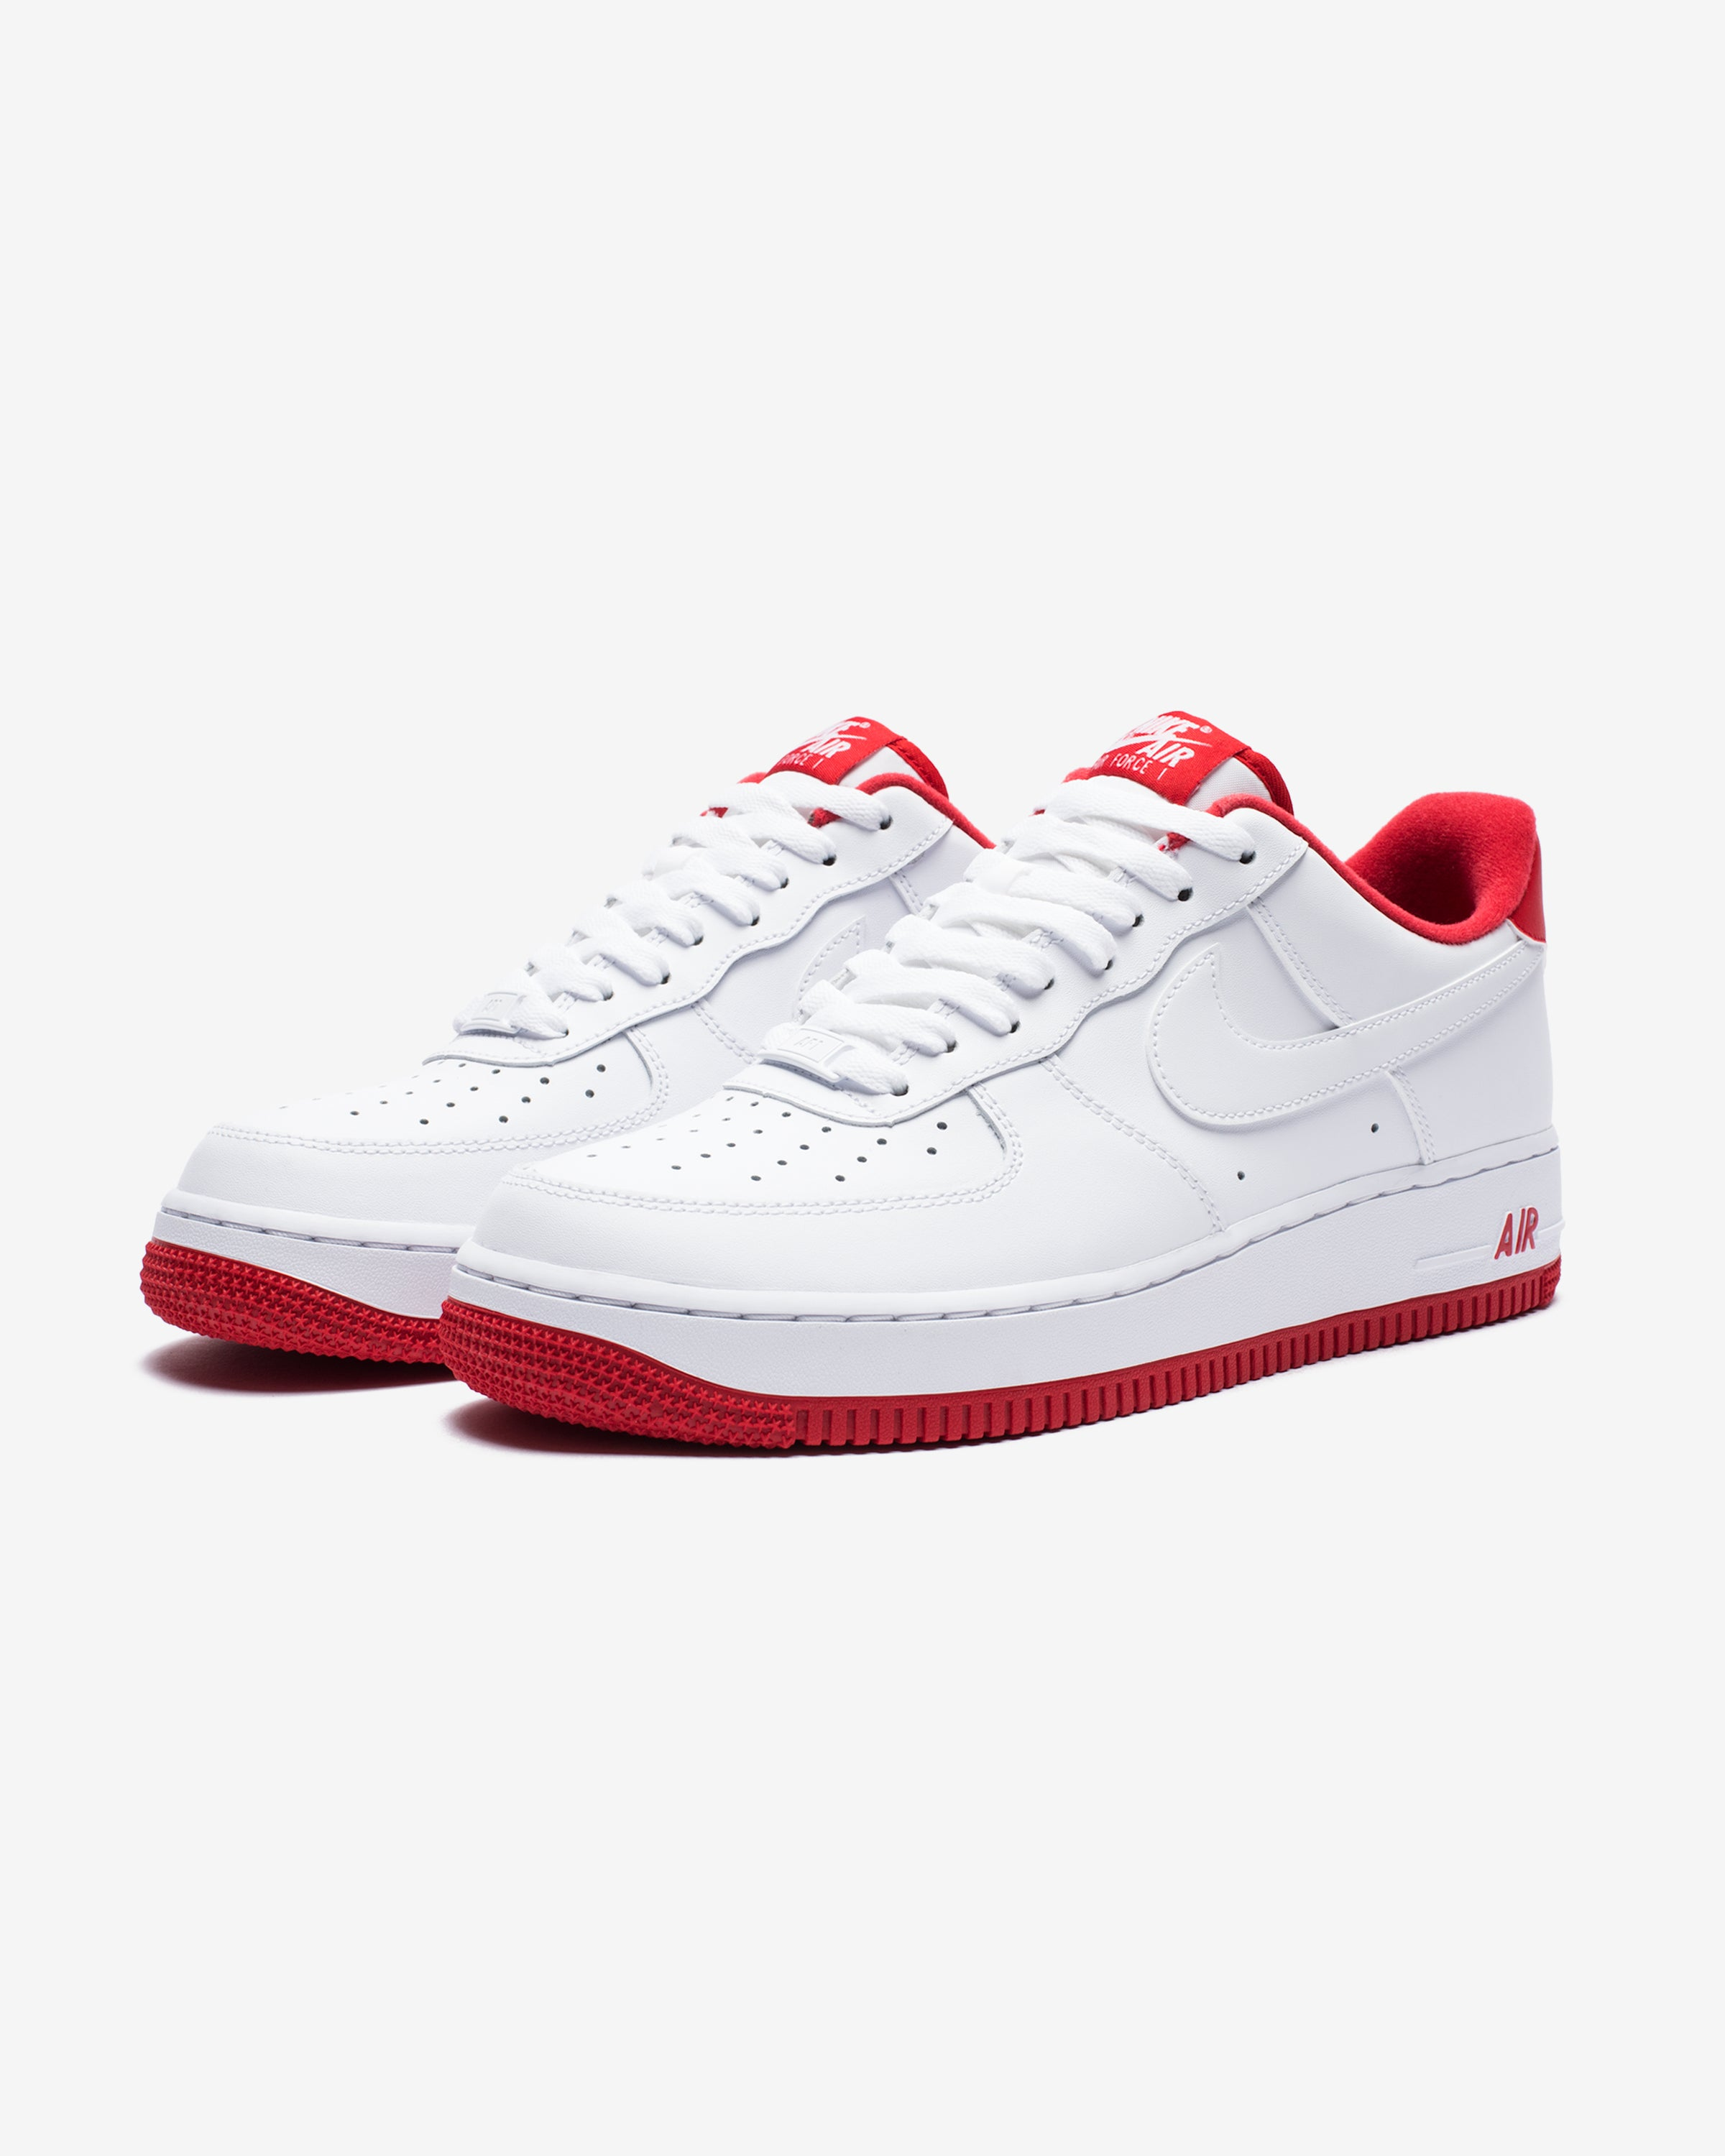 AIR FORCE 1 '07 - WHITE/UNIVERSITYRED